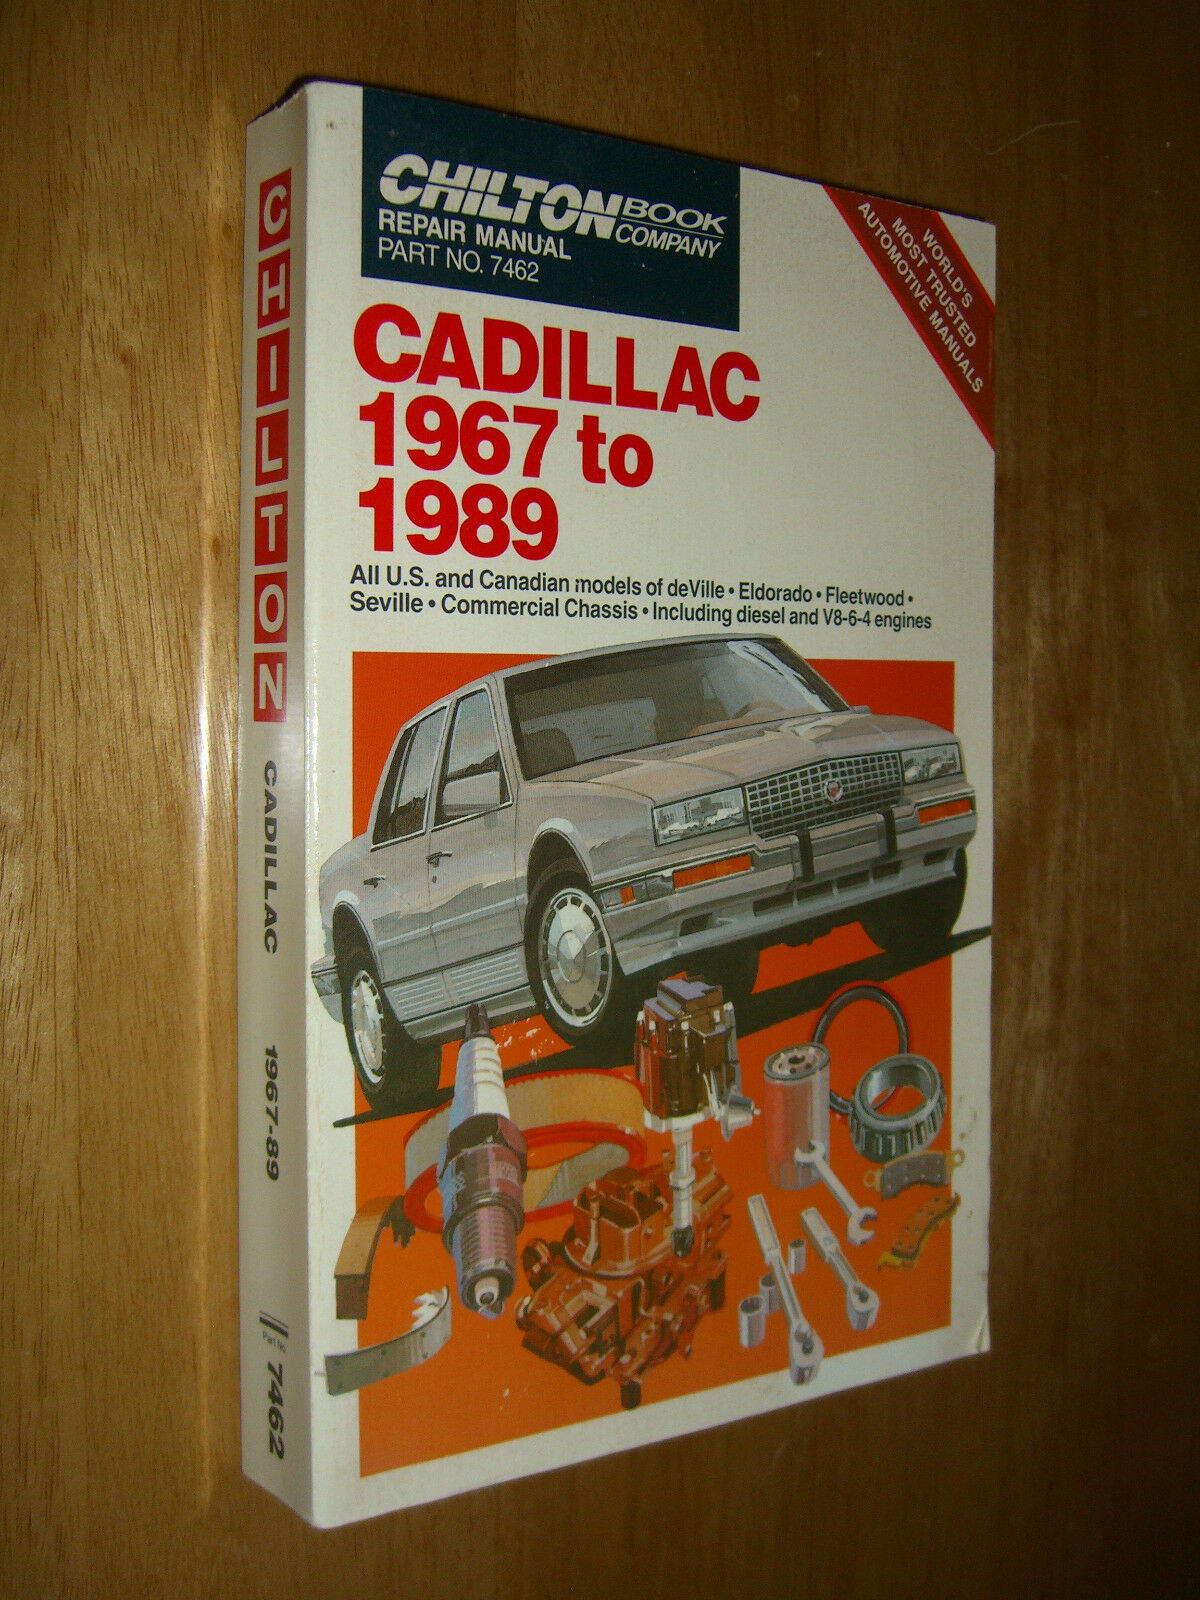 Chilton Model Specific Repair Manuals: Cadillac 1967-89 Repair and Tune-up  Guide by Chilton Automotive Editorial Staff (1989, Paperback) | eBay